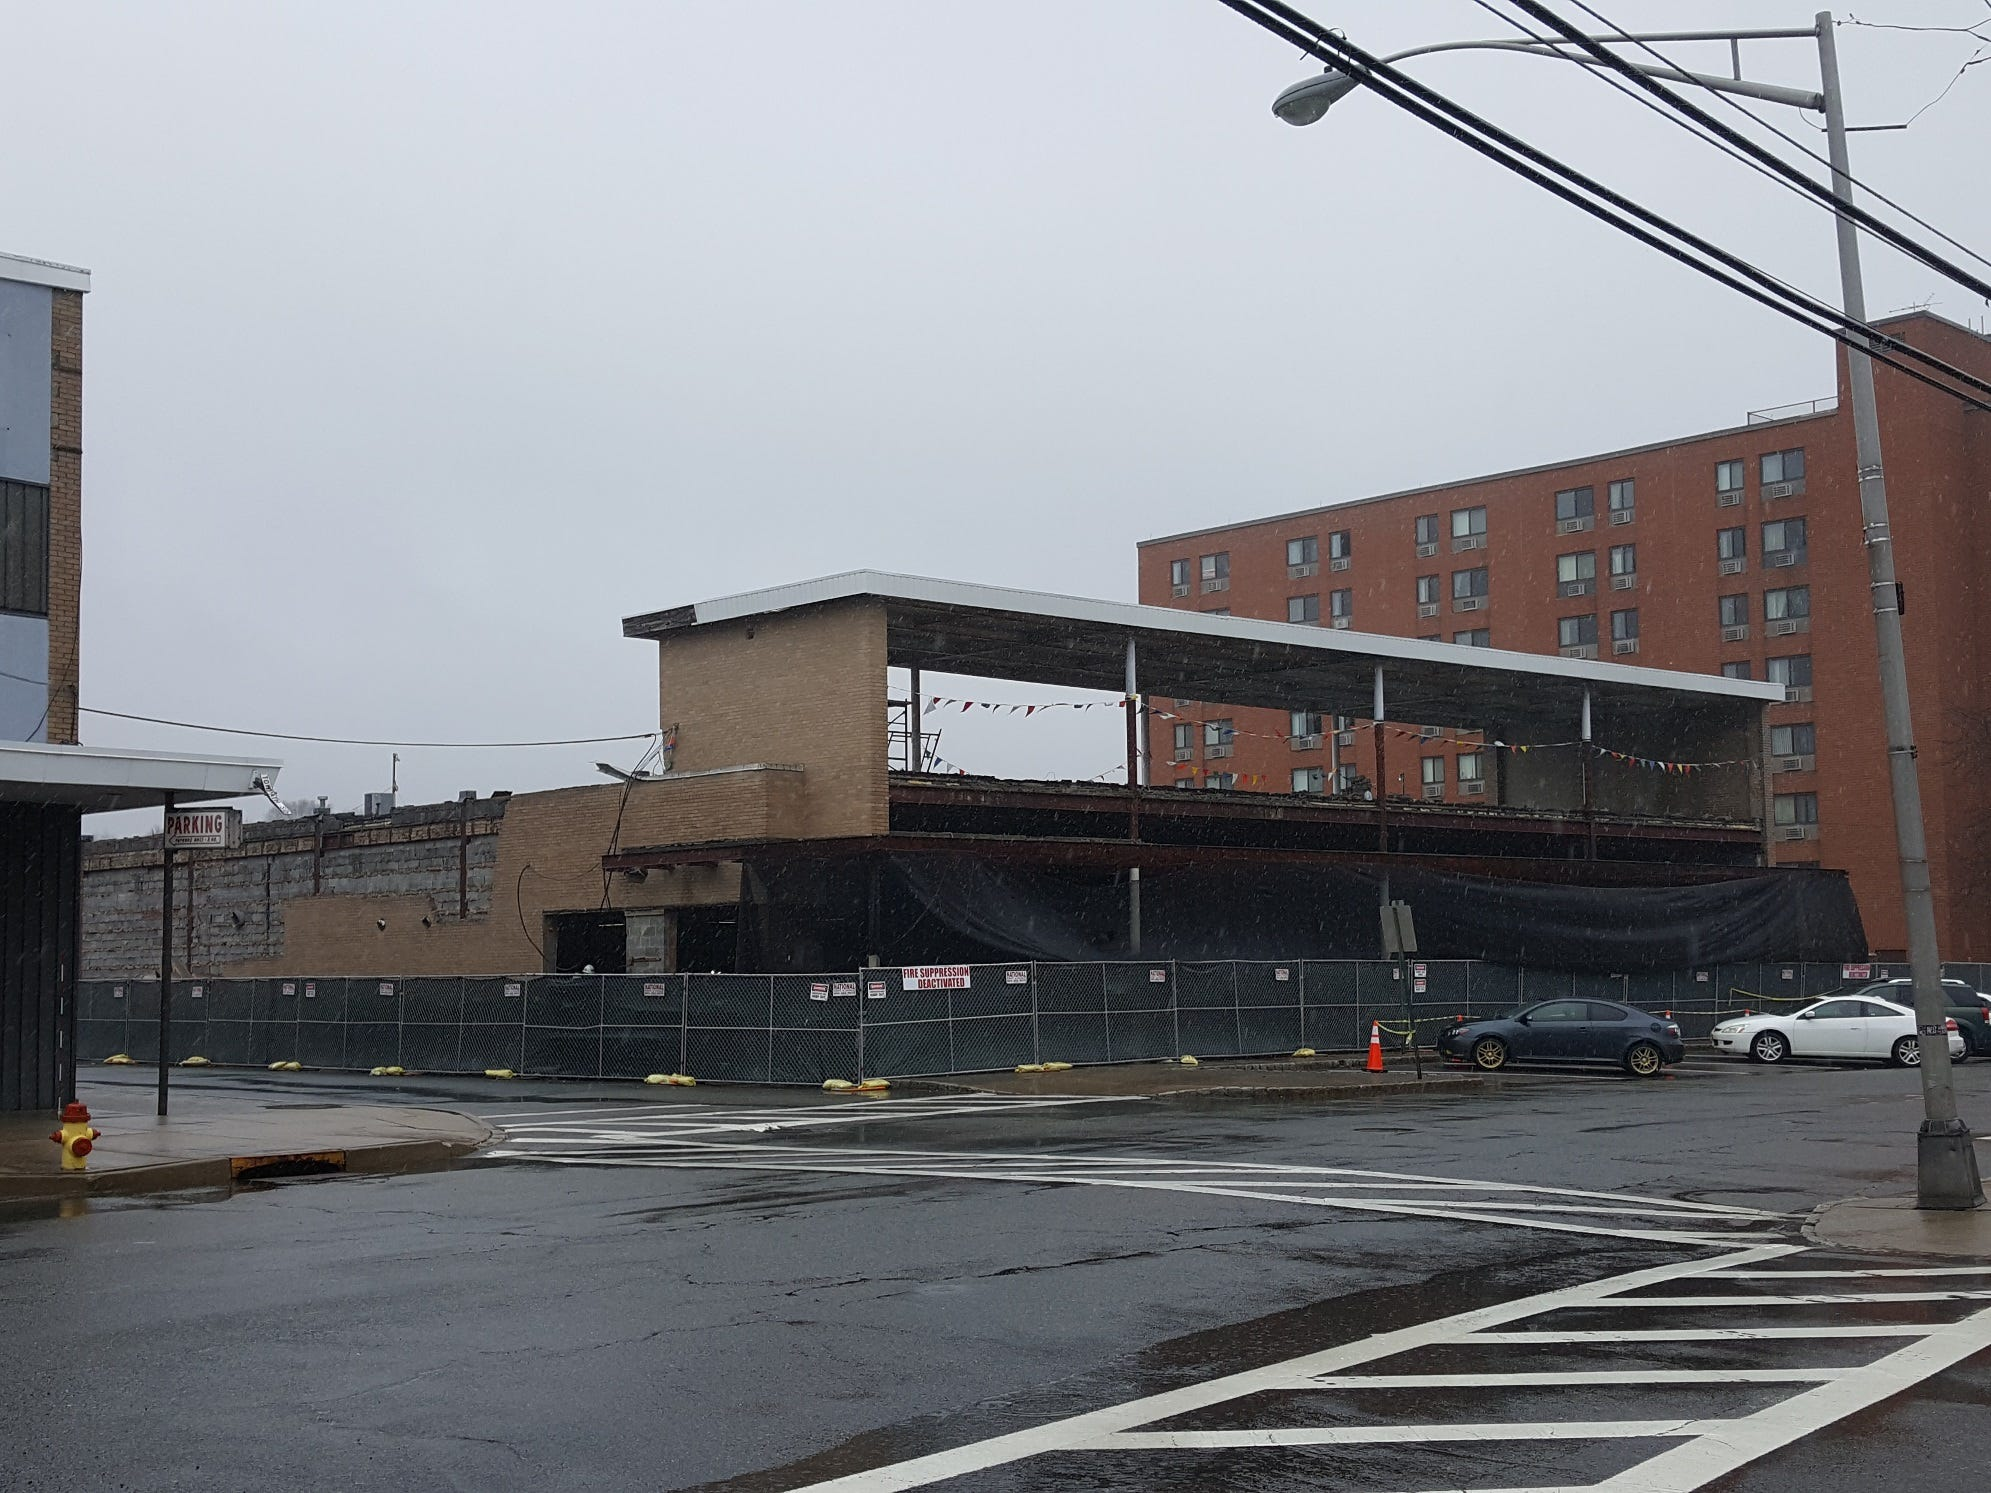 Photos of 47 Bassett Highway, formerly a JC Penney store and a flag factory before being redeveloped into a church for the Church of Jesus Christ of Latter Day Saints in Dover.